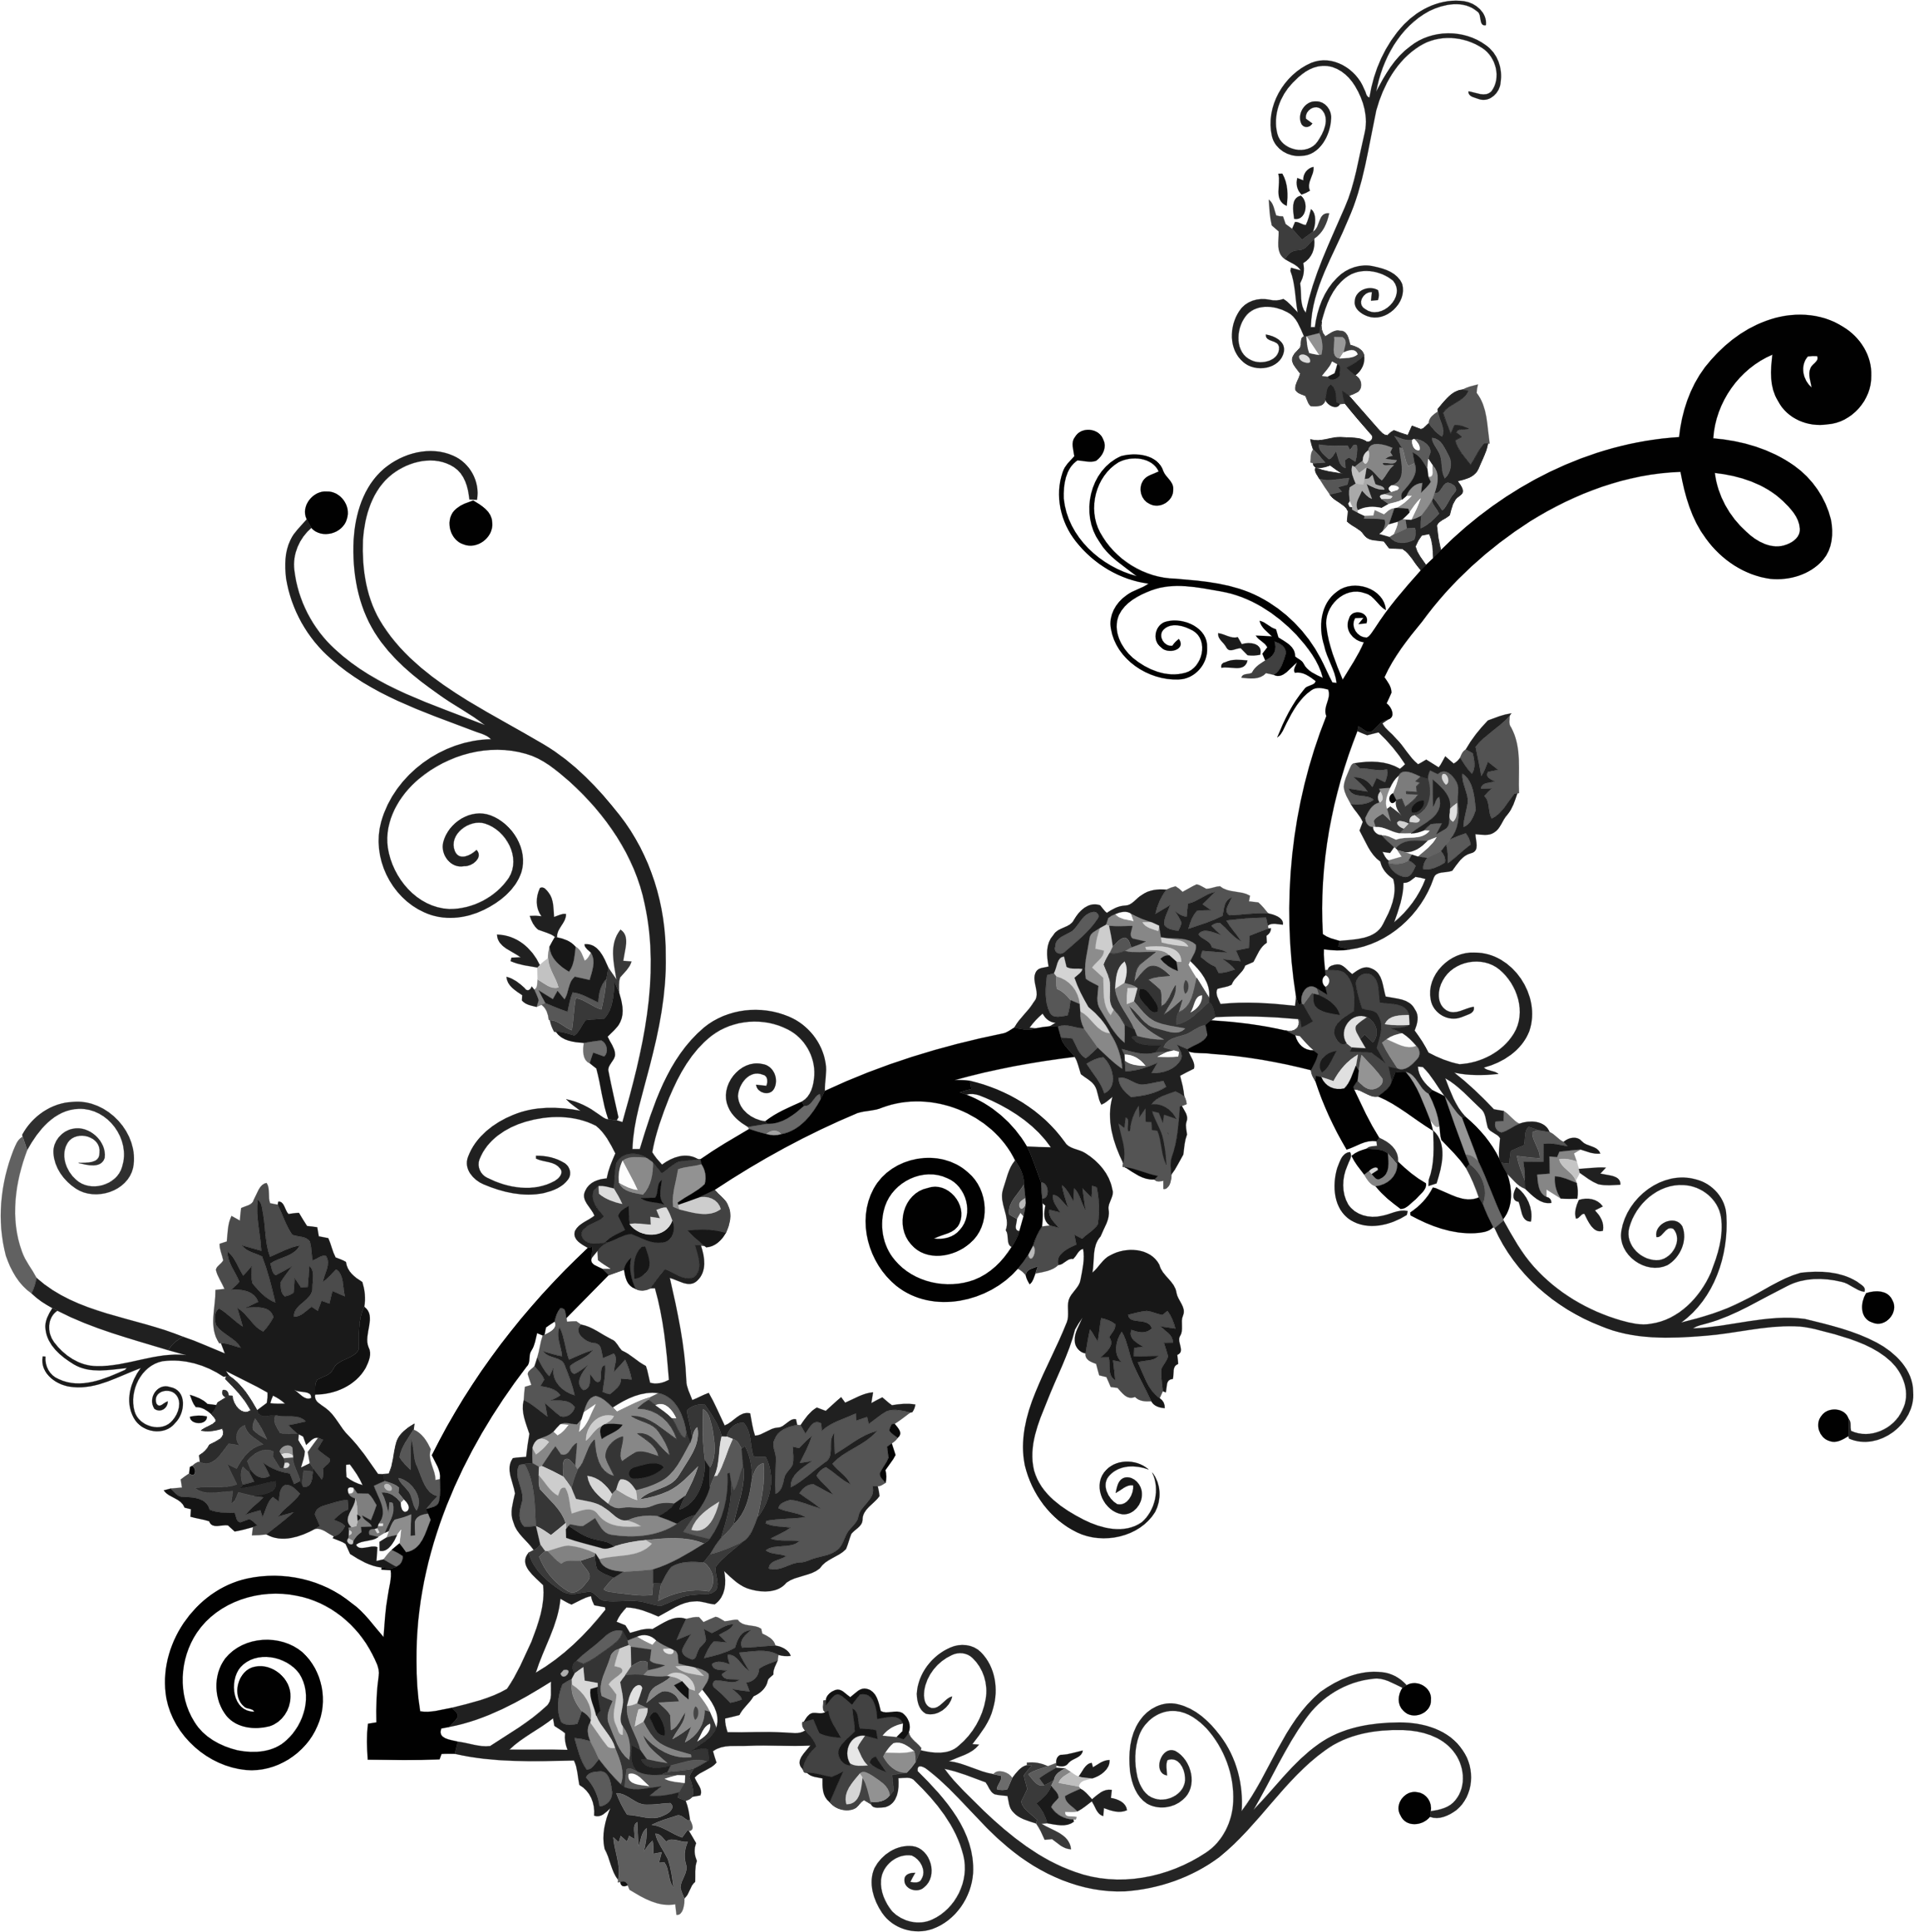 Flower flourish clipart clipart royalty free library Clipart - Rose Floral Flourish 5 clipart royalty free library